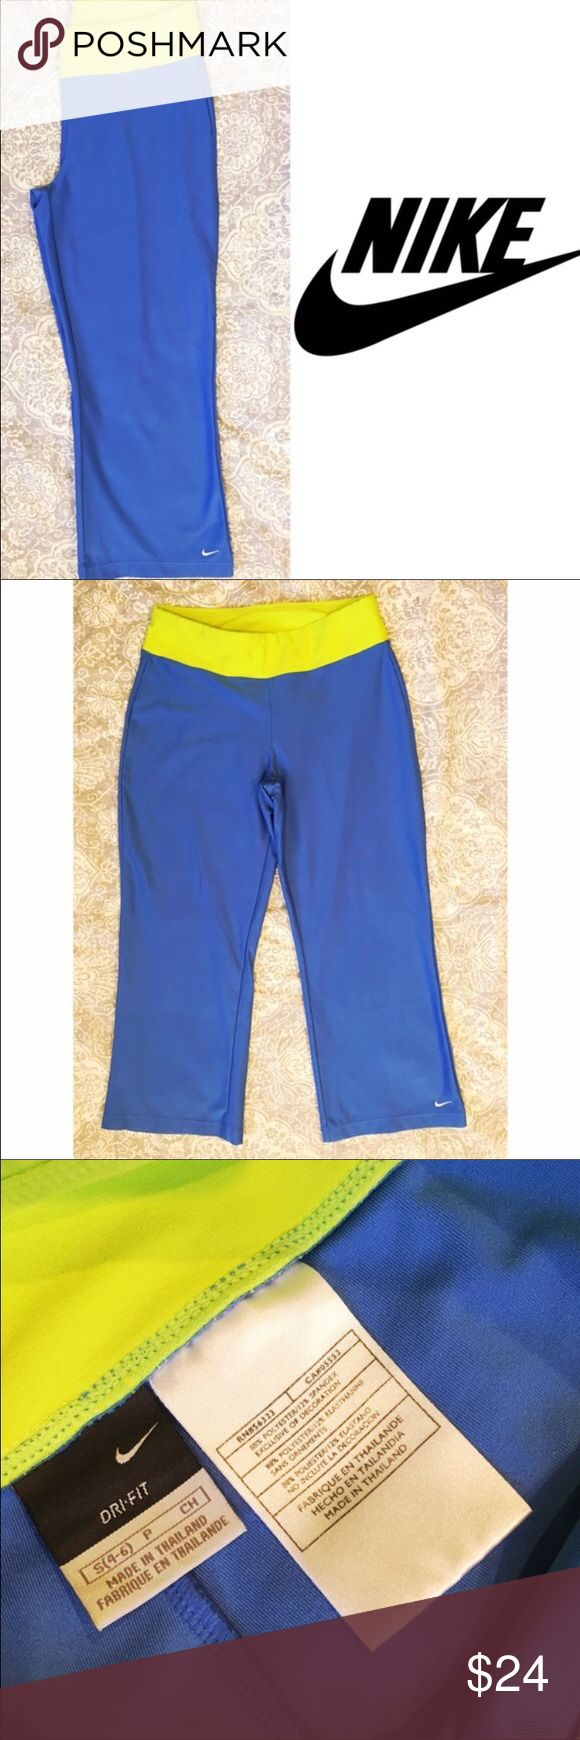 Nike bright blue cropped Dri-Fit pants Fun bright blue Nike Dri-Fit cropped pants with yellow/green trim. Embroidered white 'swoosh' on bottom hem. Excellent condition Nike Pants Ankle & Cropped